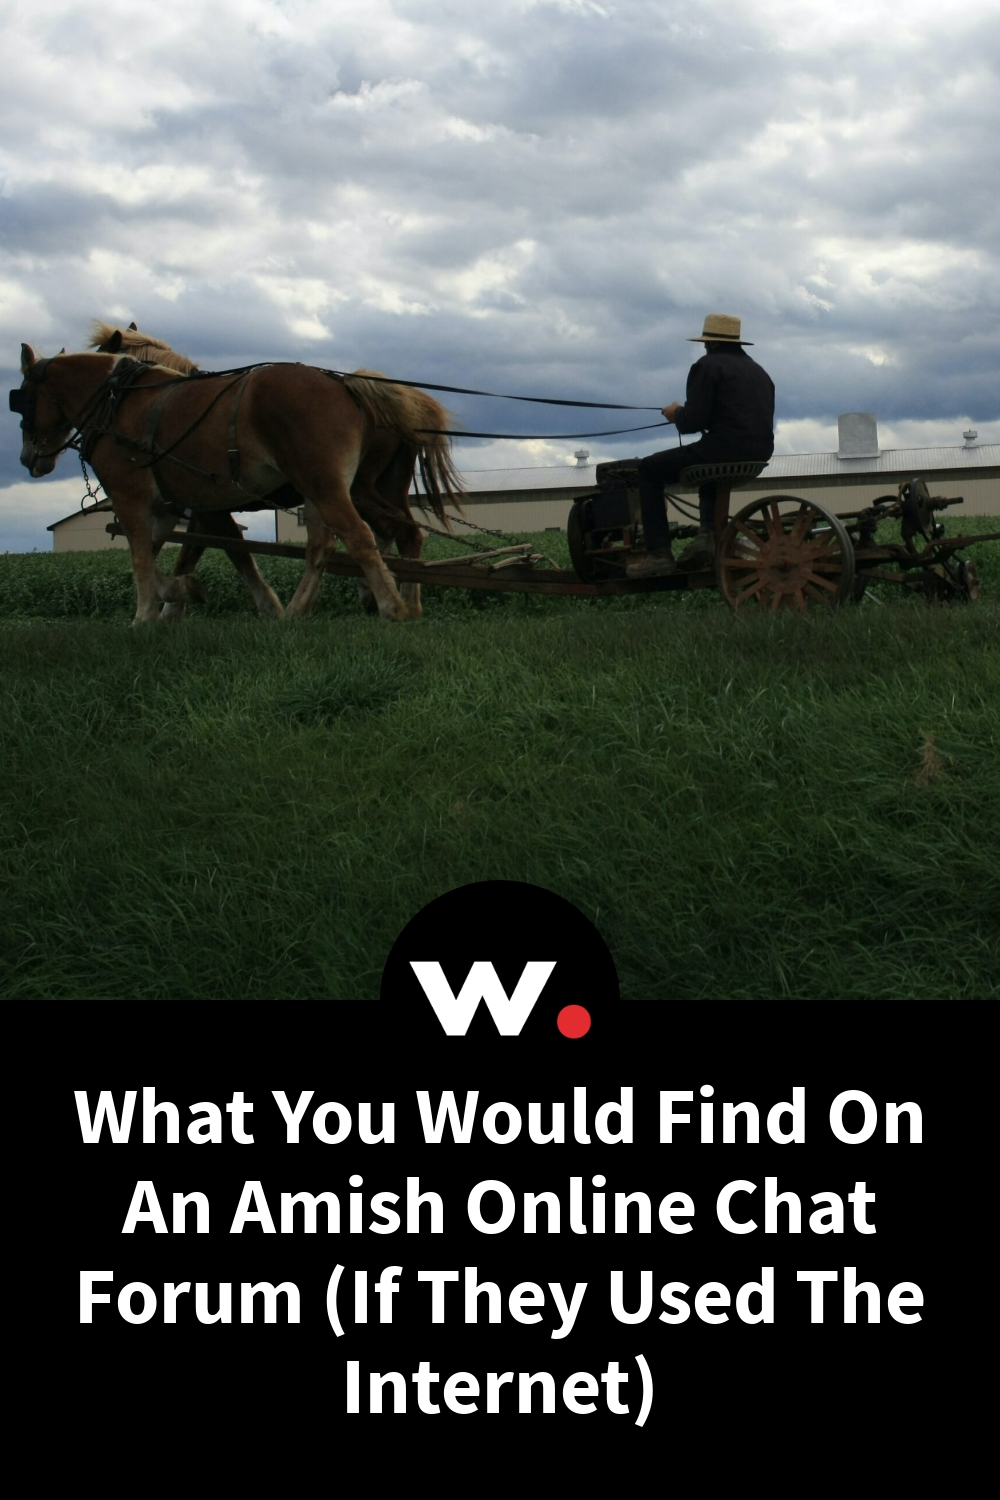 What You Would Find On An Amish Online Chat Forum (If They Used The Internet)